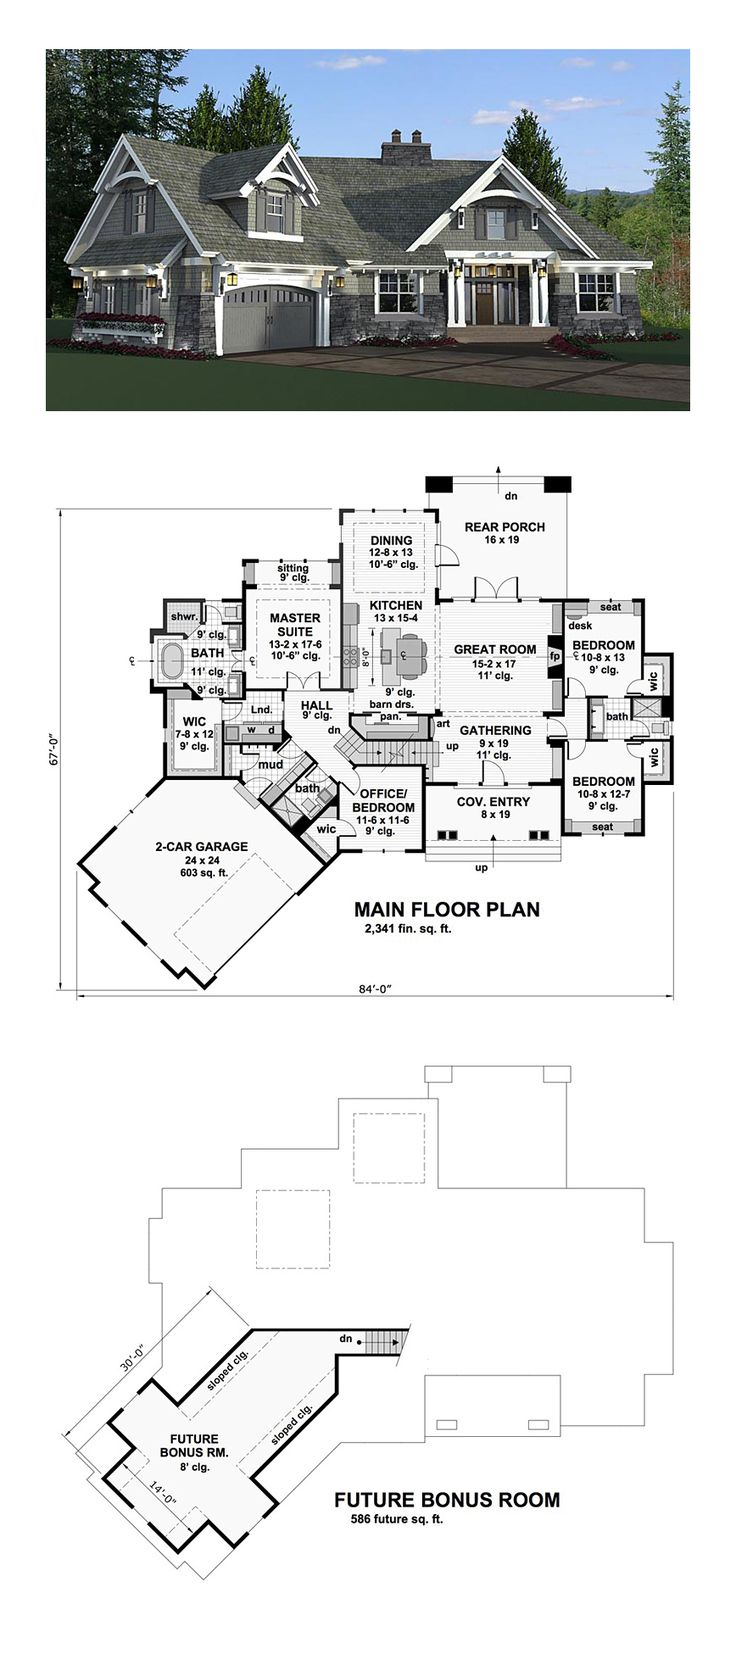 best house plans images on pinterest architecture my house and